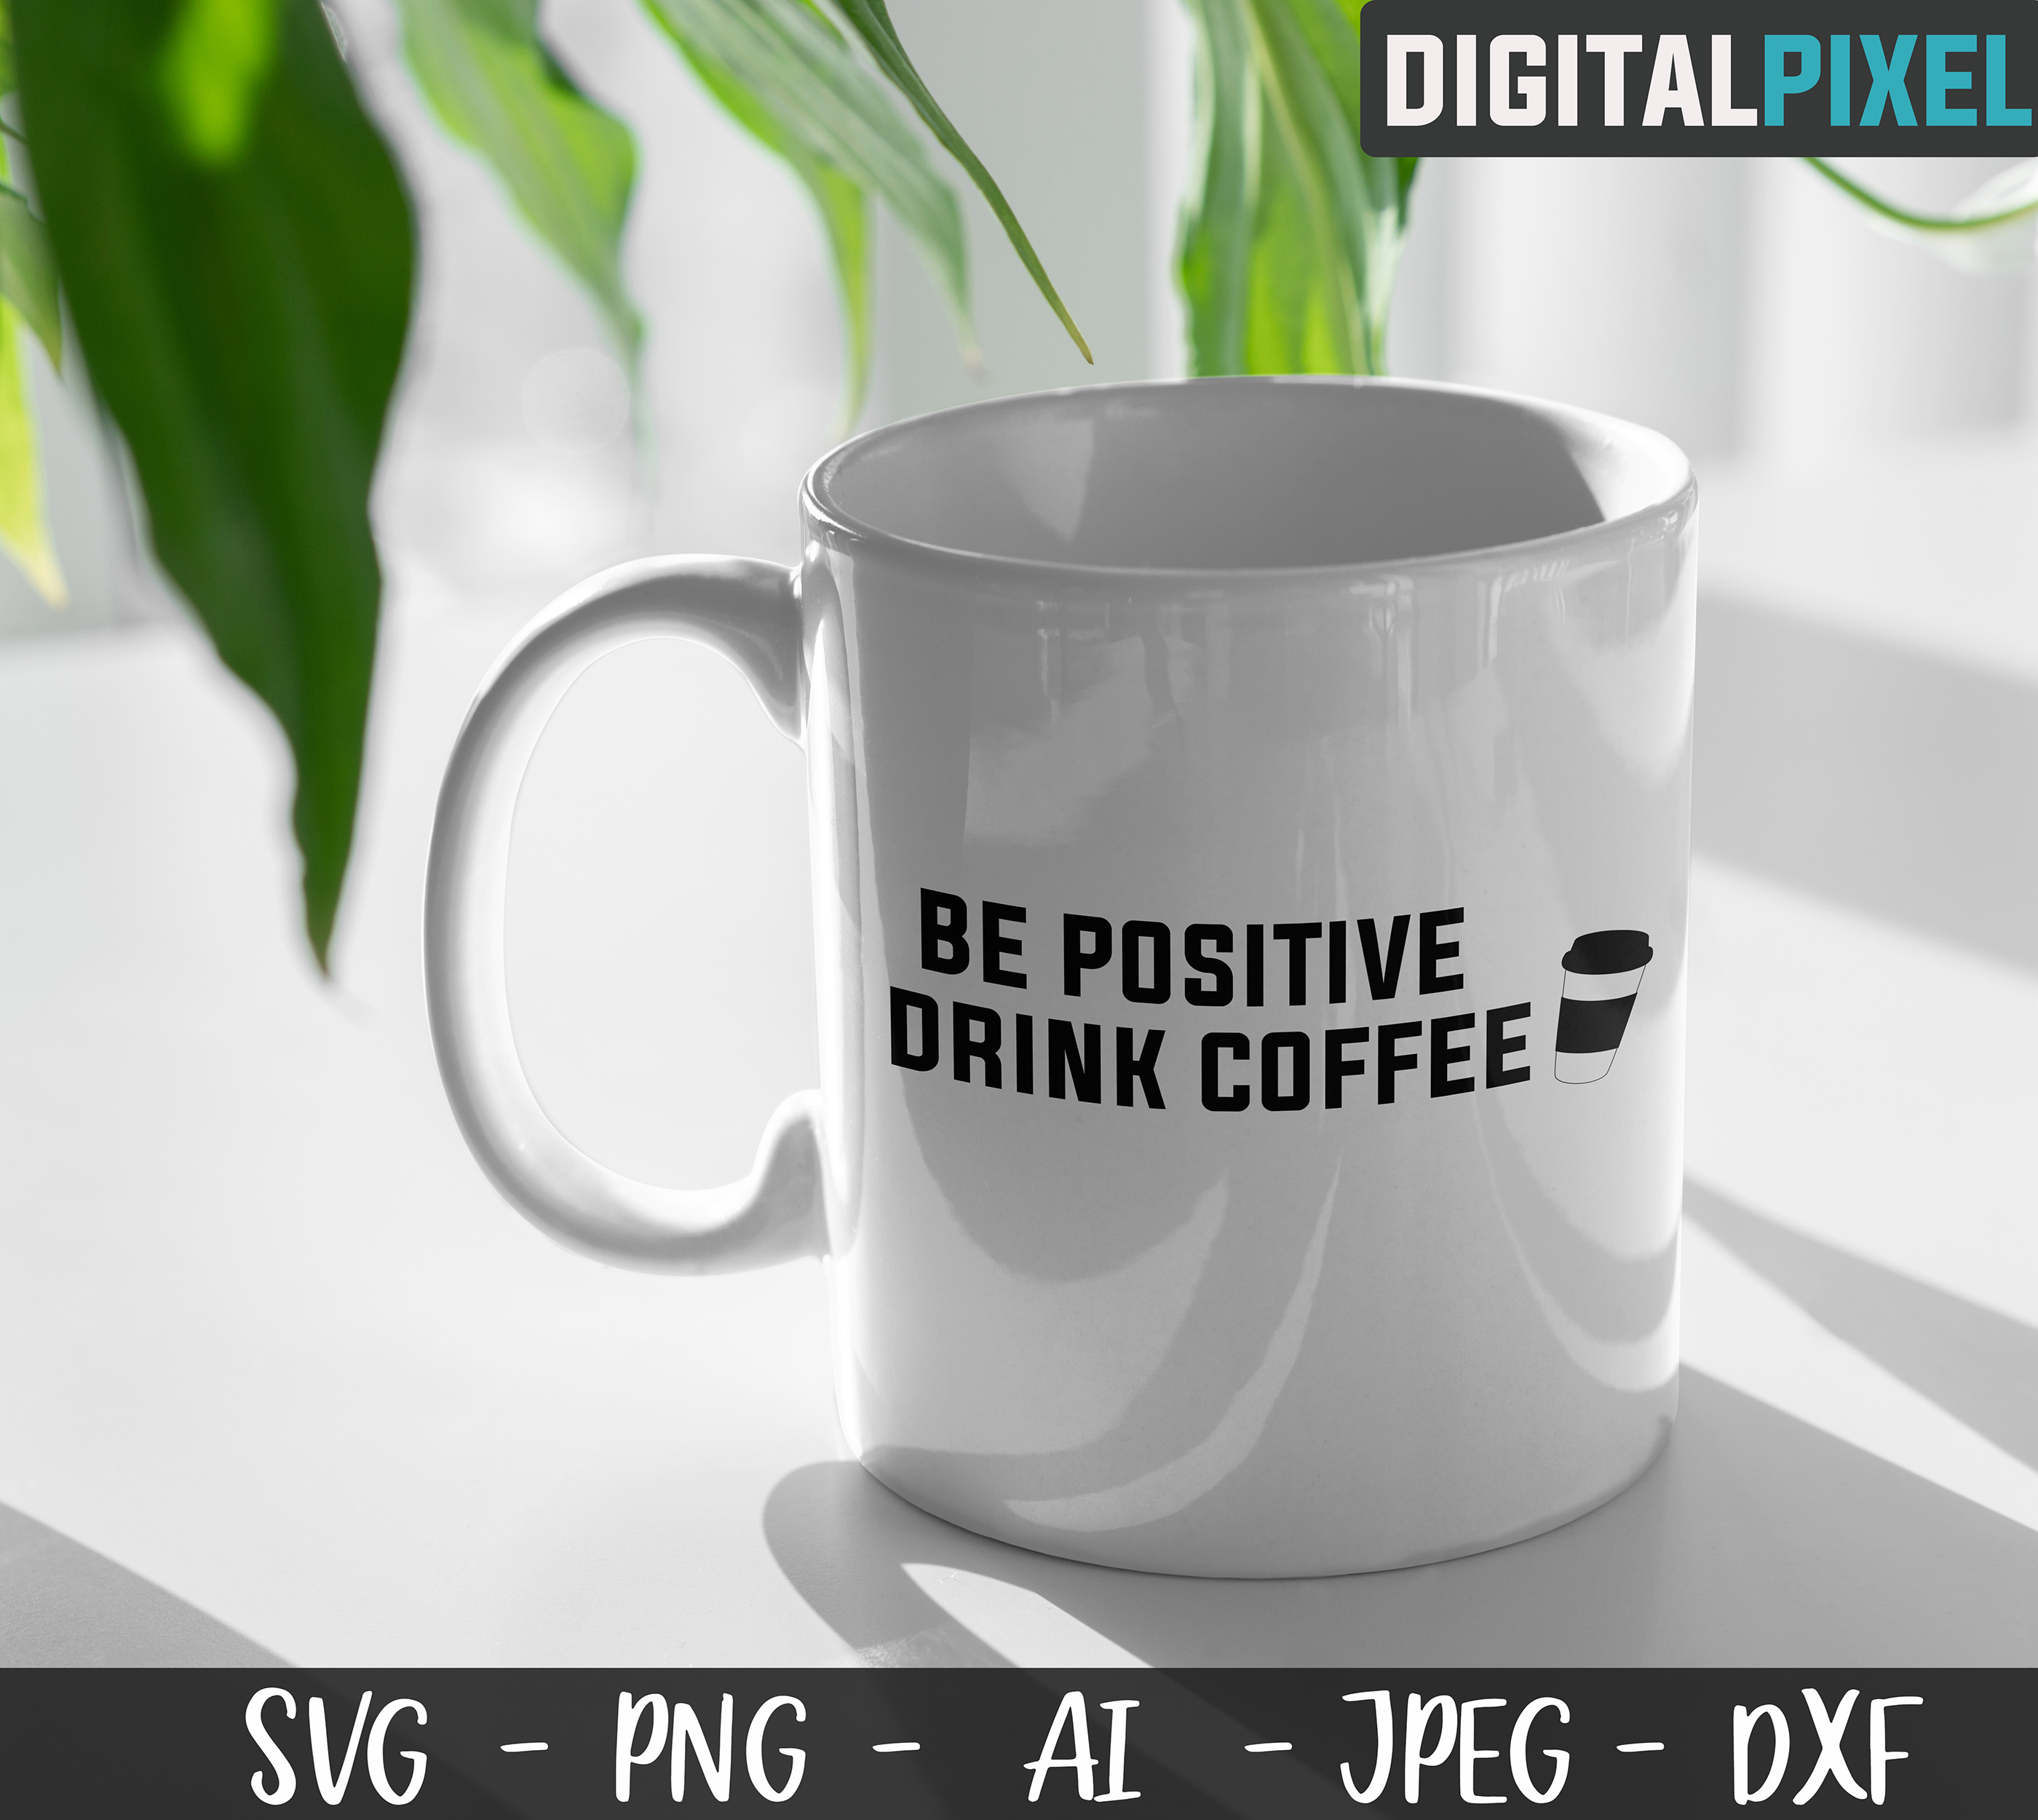 Coffee Bundle SVG PNG JPEG DXF Circut Cut Coffee Crafters example image 6